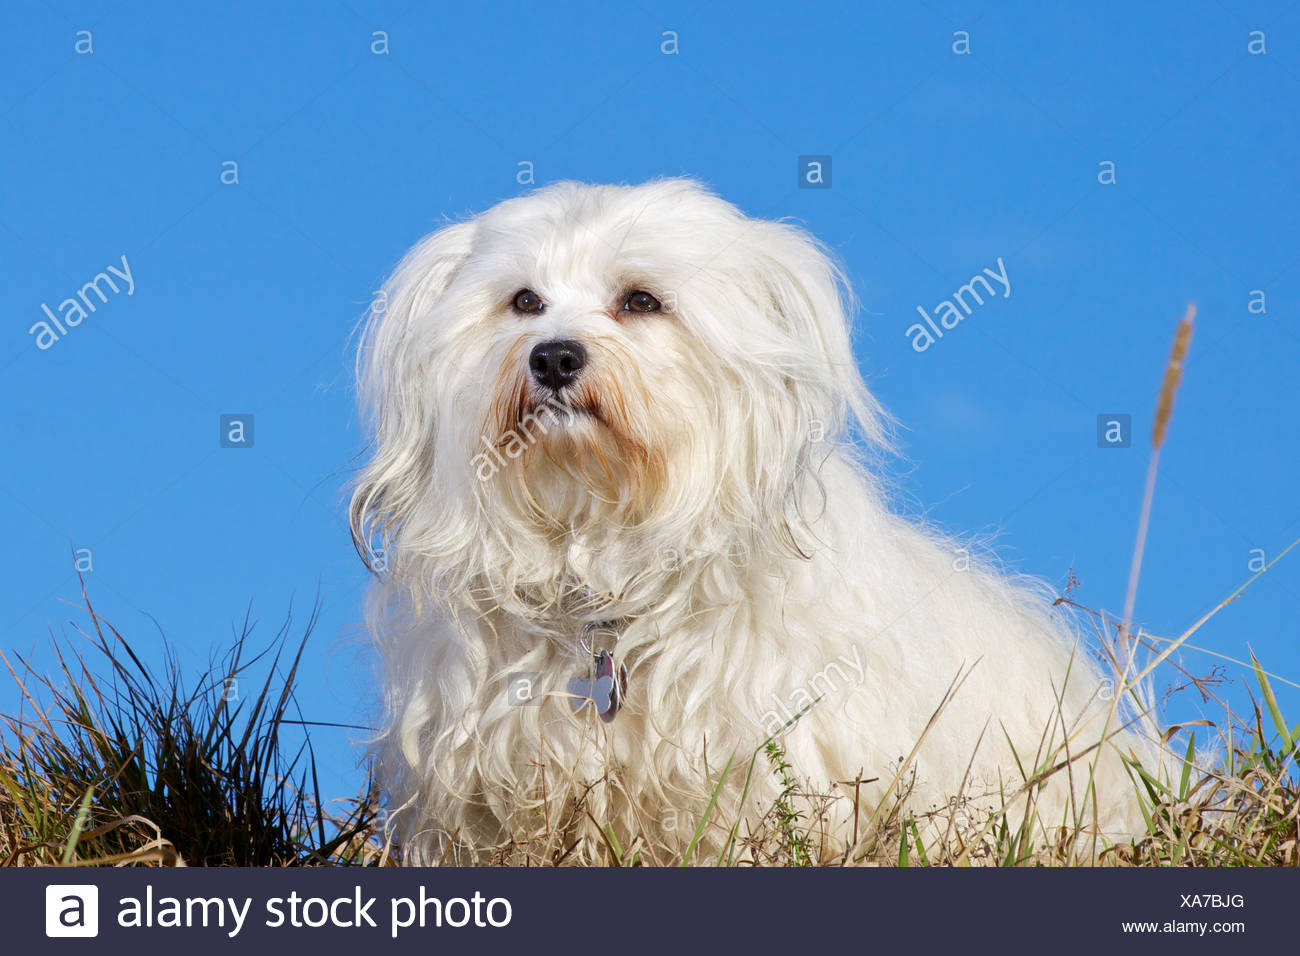 Good-natured dog looking - Stock Image